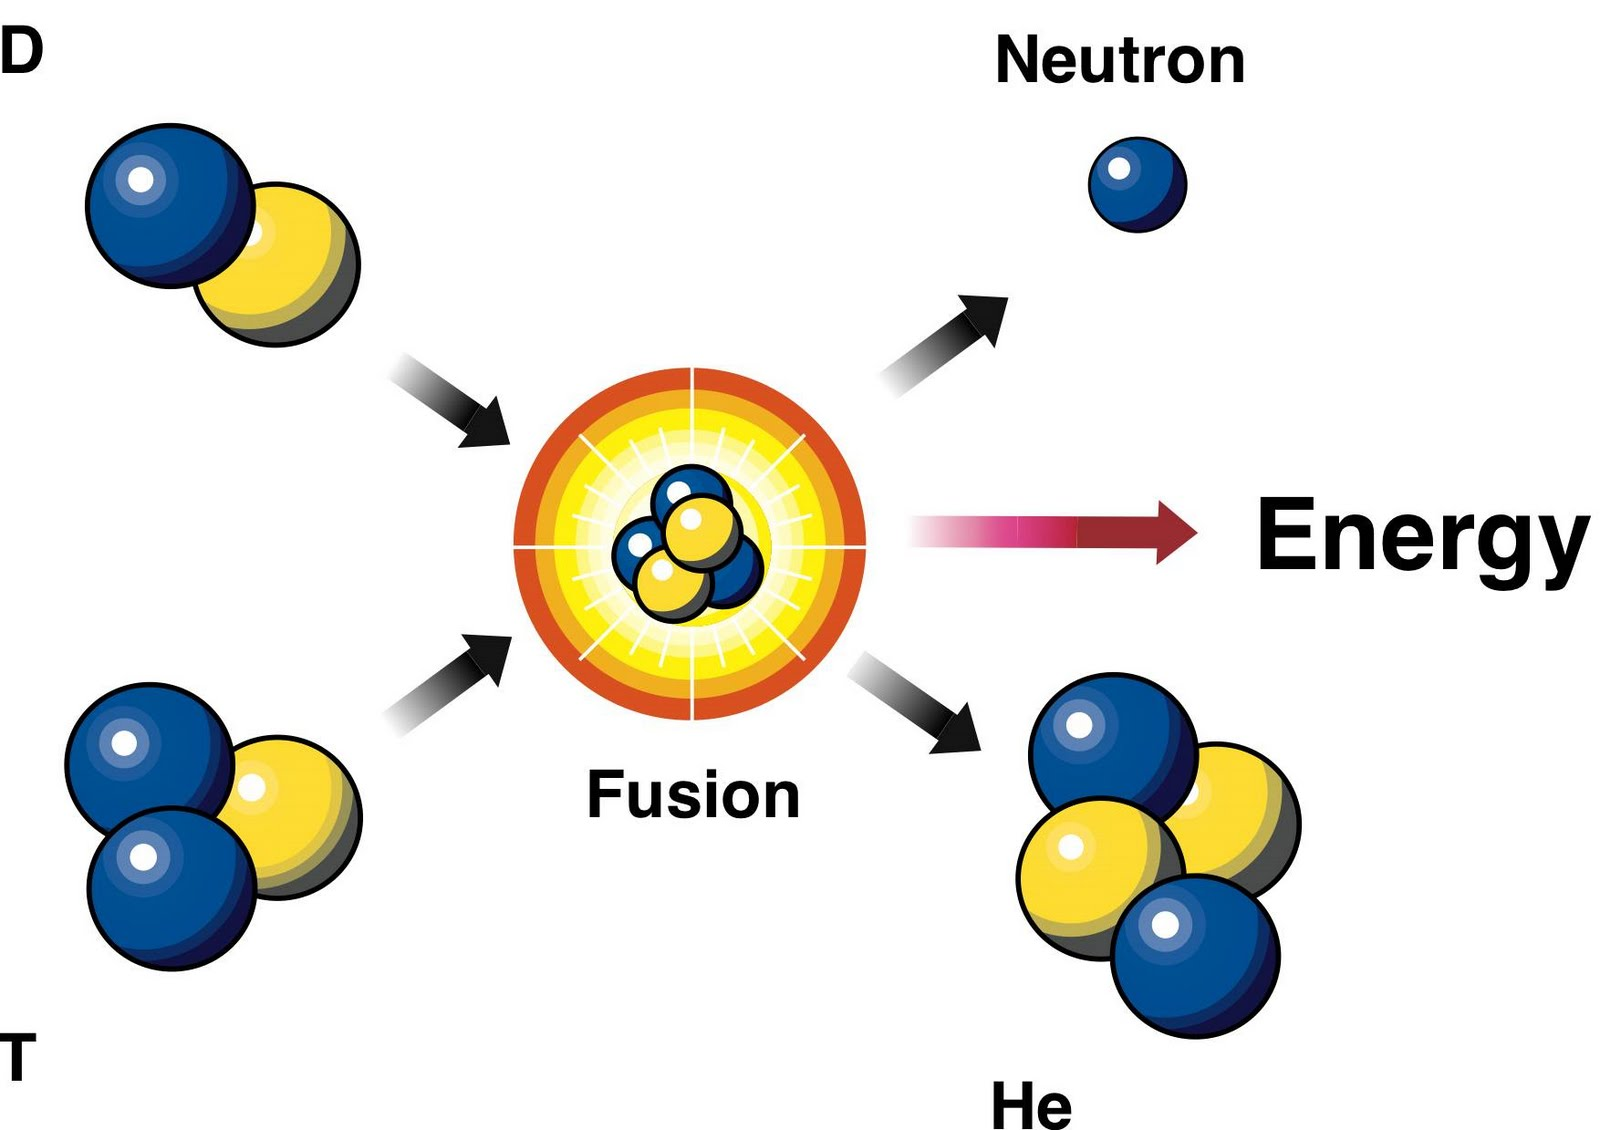 Image result for nuclear fusion (http://3.bp.blogspot.com/_cwrSE63jF7Y/S7upNZxkcFI/AAAAAAAAA3Q/GAvNy54Fqso/s1600/deuterium_tritium_fusion_reaction.jpg)